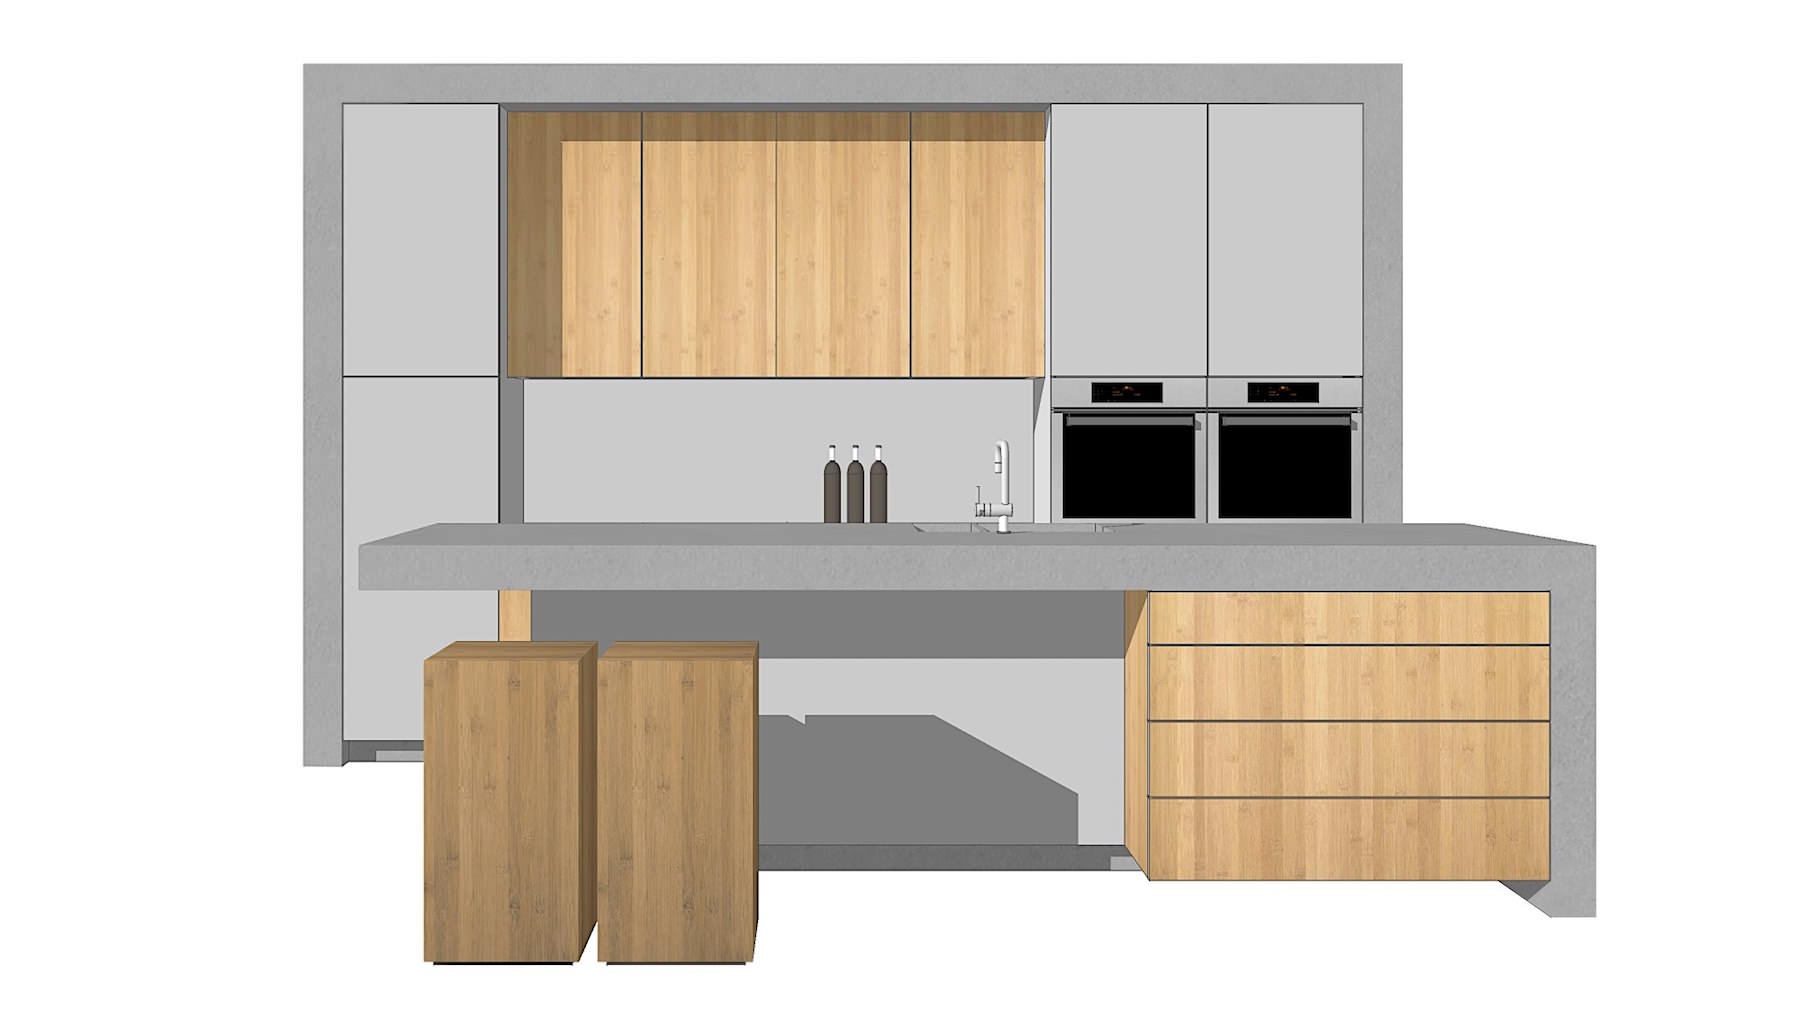 SketchUp 3D kitchen model